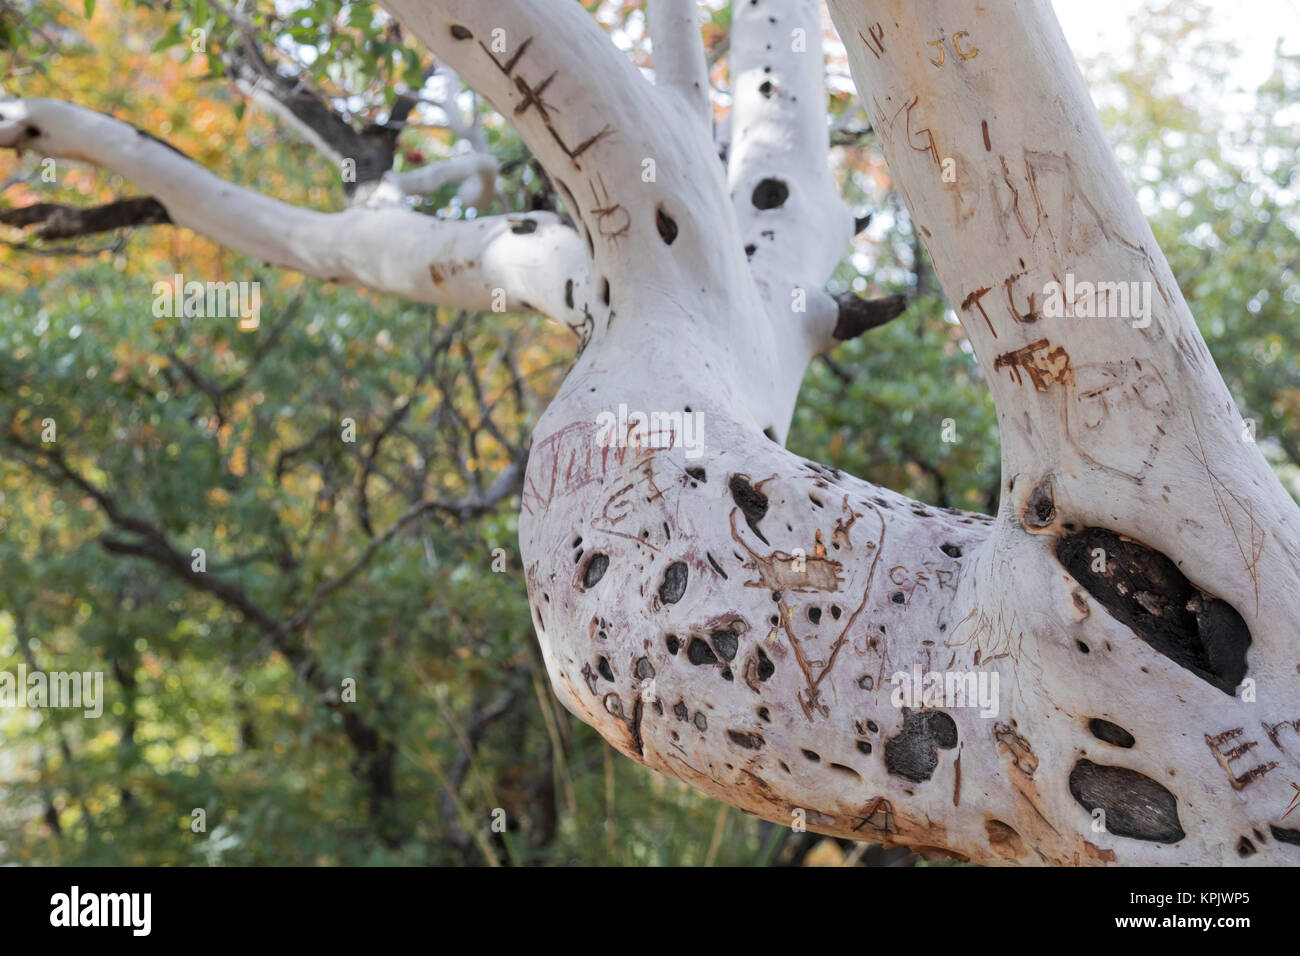 Guadalupe Mountains National Park, Texas - A defaced Texas madrone tree in McKittrick Canyon. - Stock Image